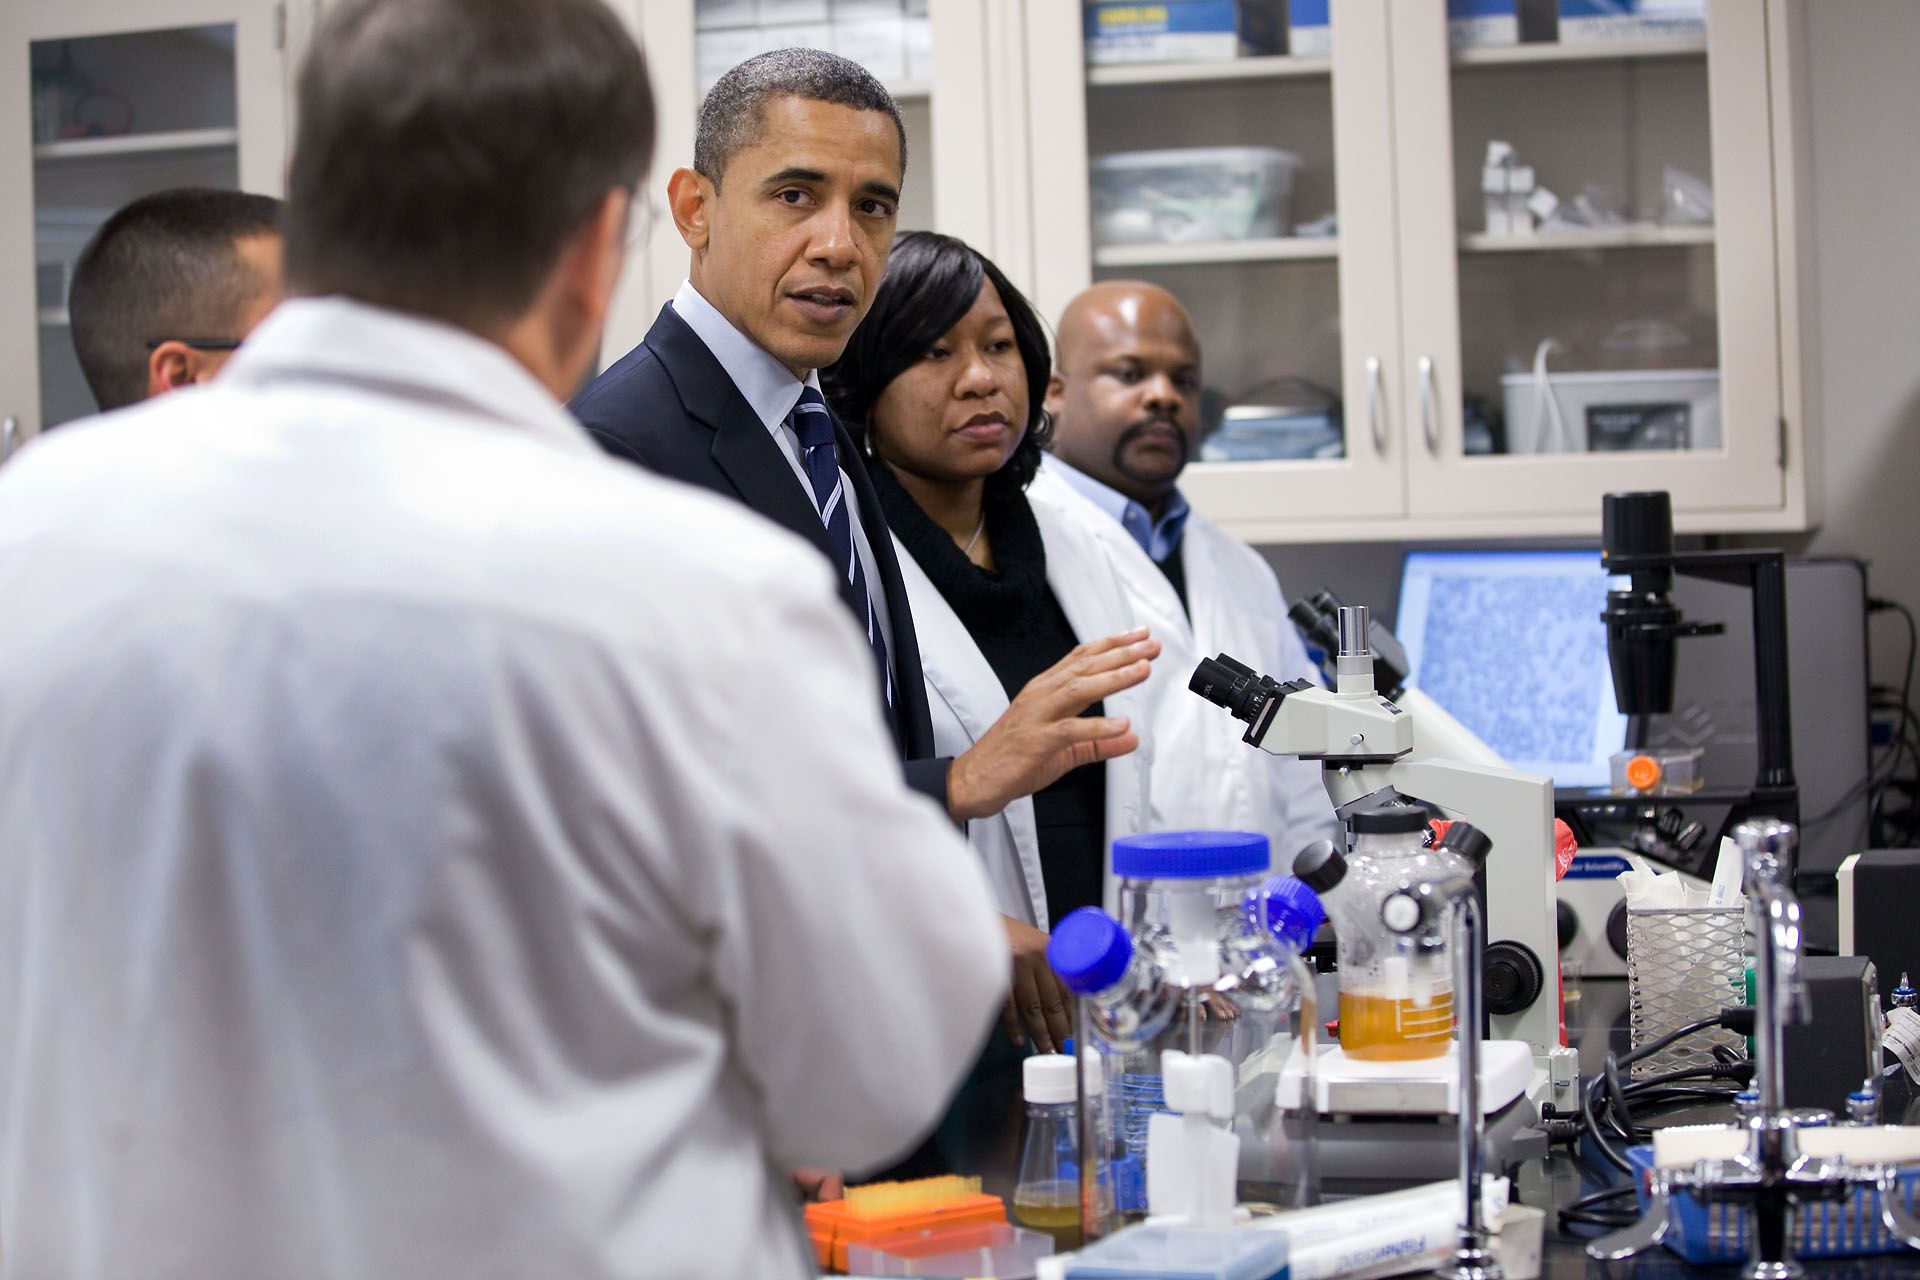 The President Visits a Laboratory